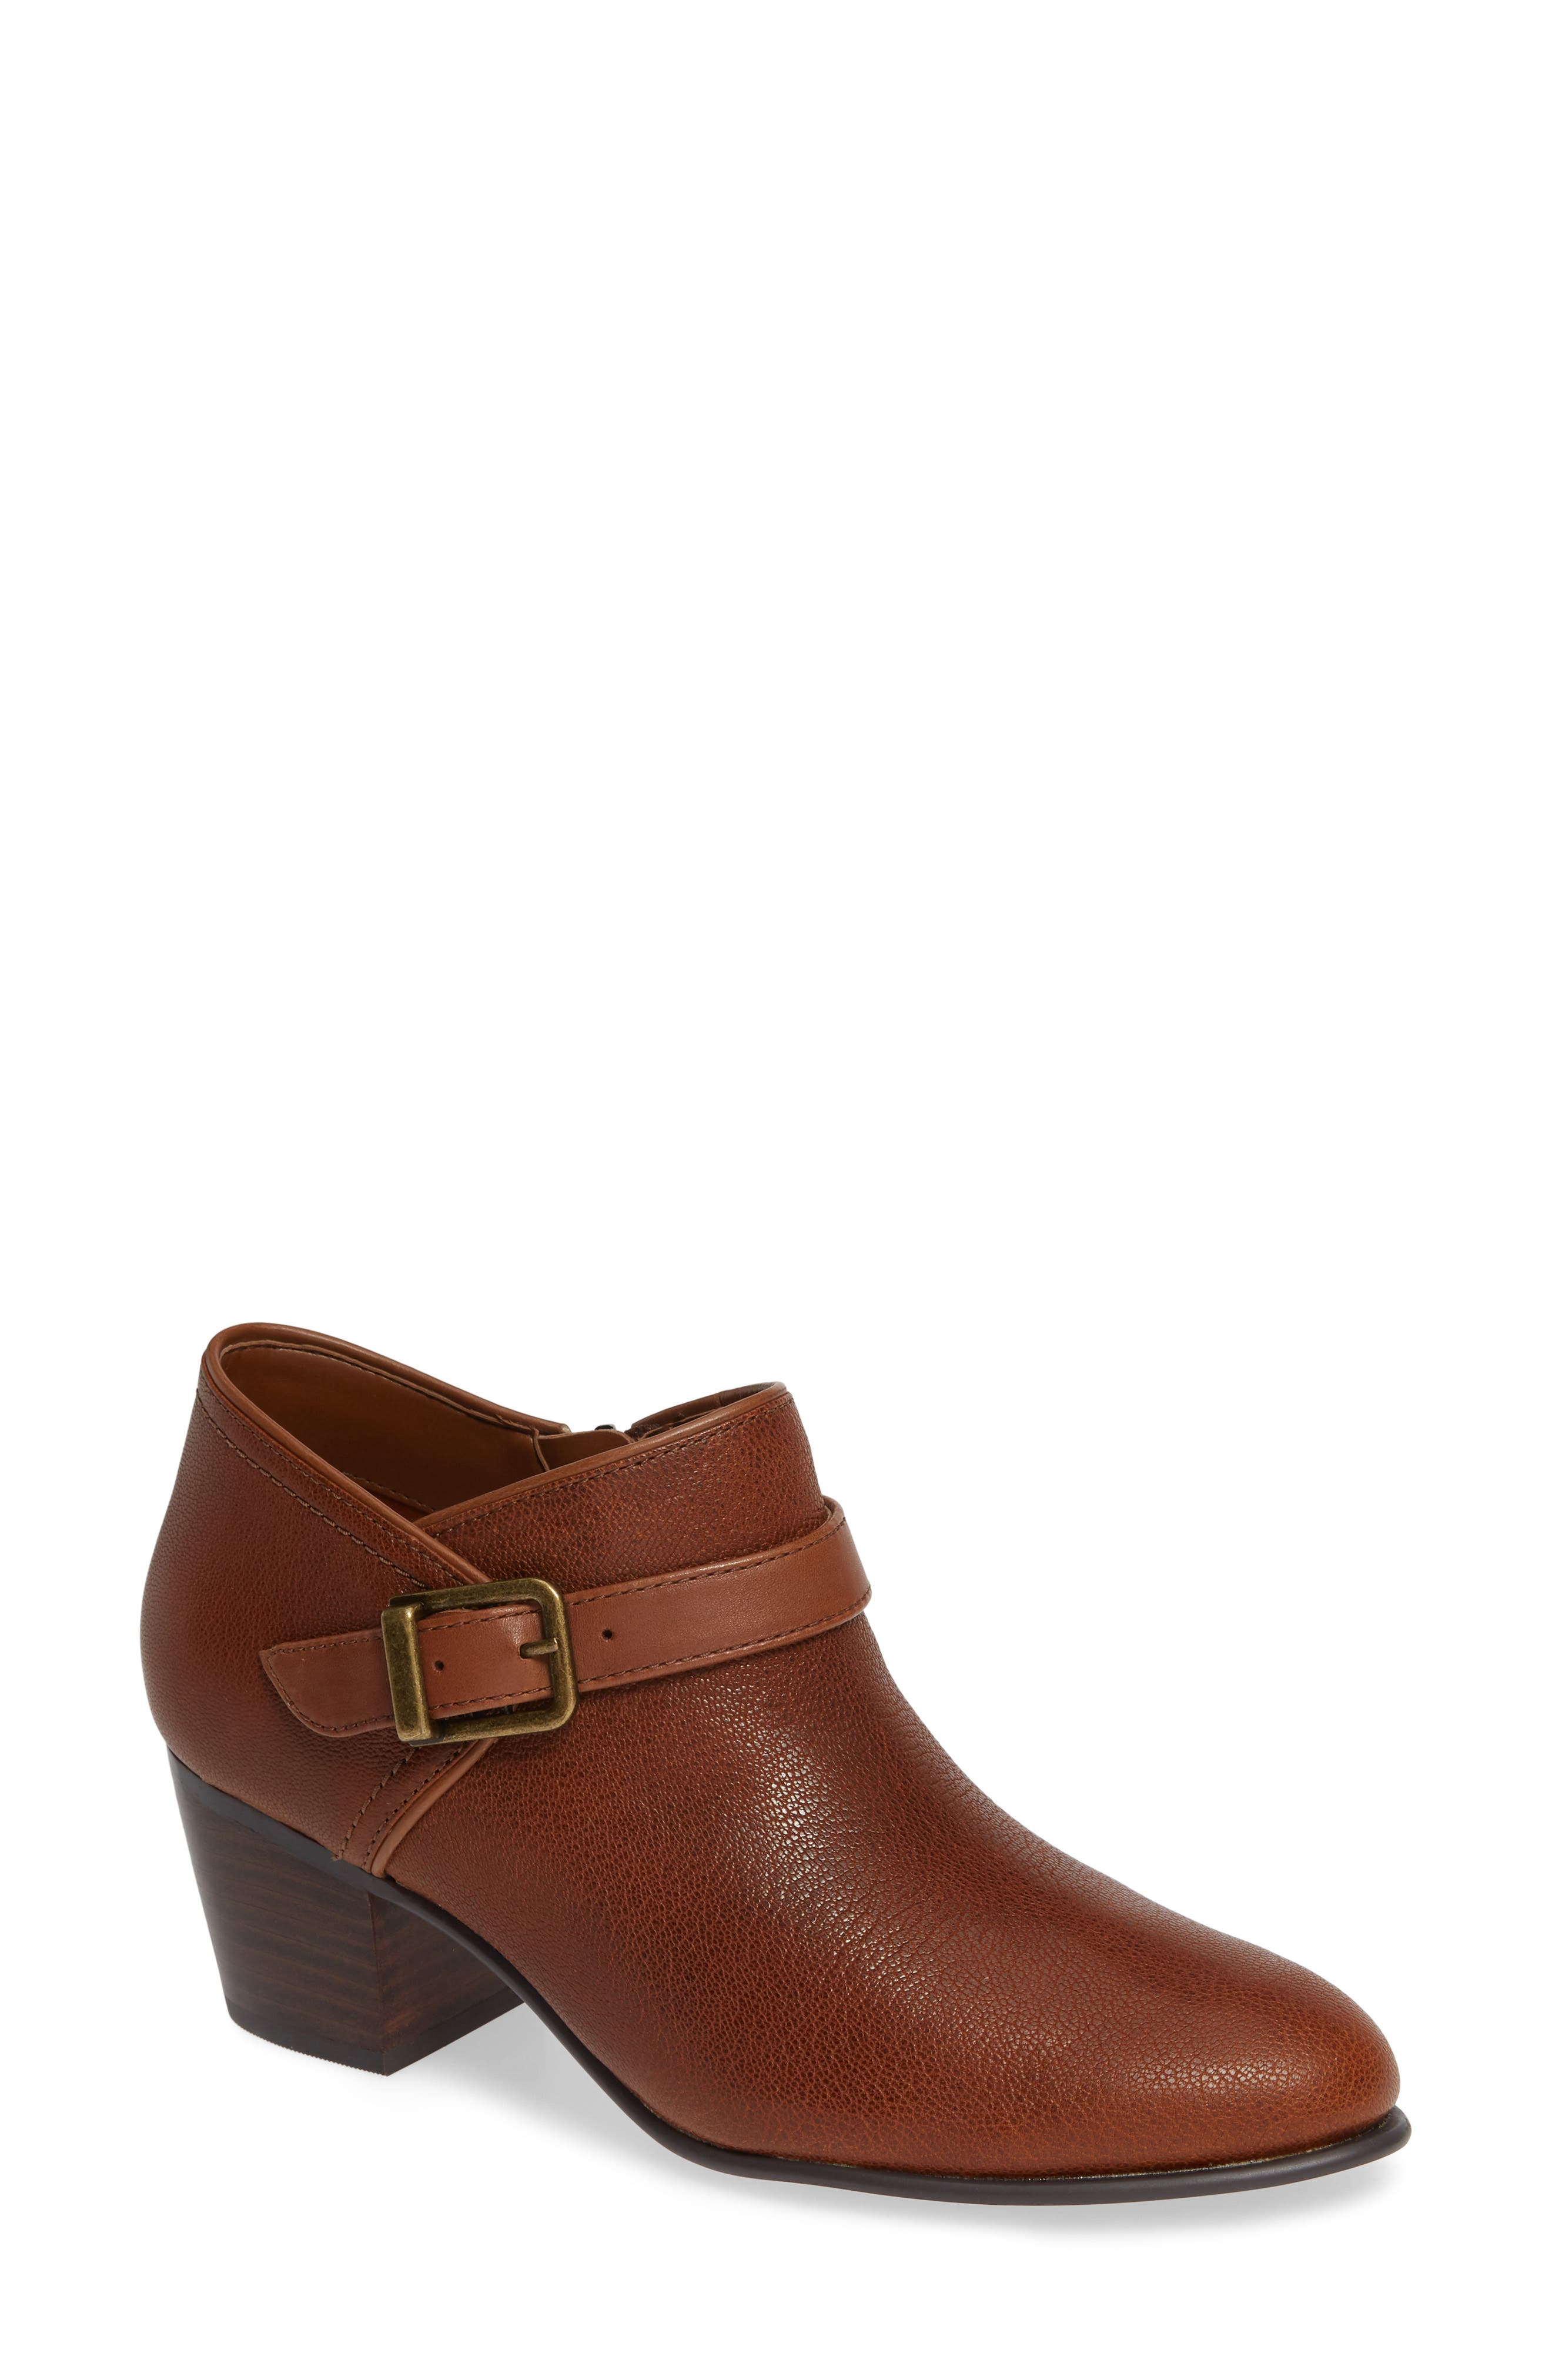 Maypearl Milla Bootie,                             Main thumbnail 1, color,                             DARK TAN TUMBLED LEATHER